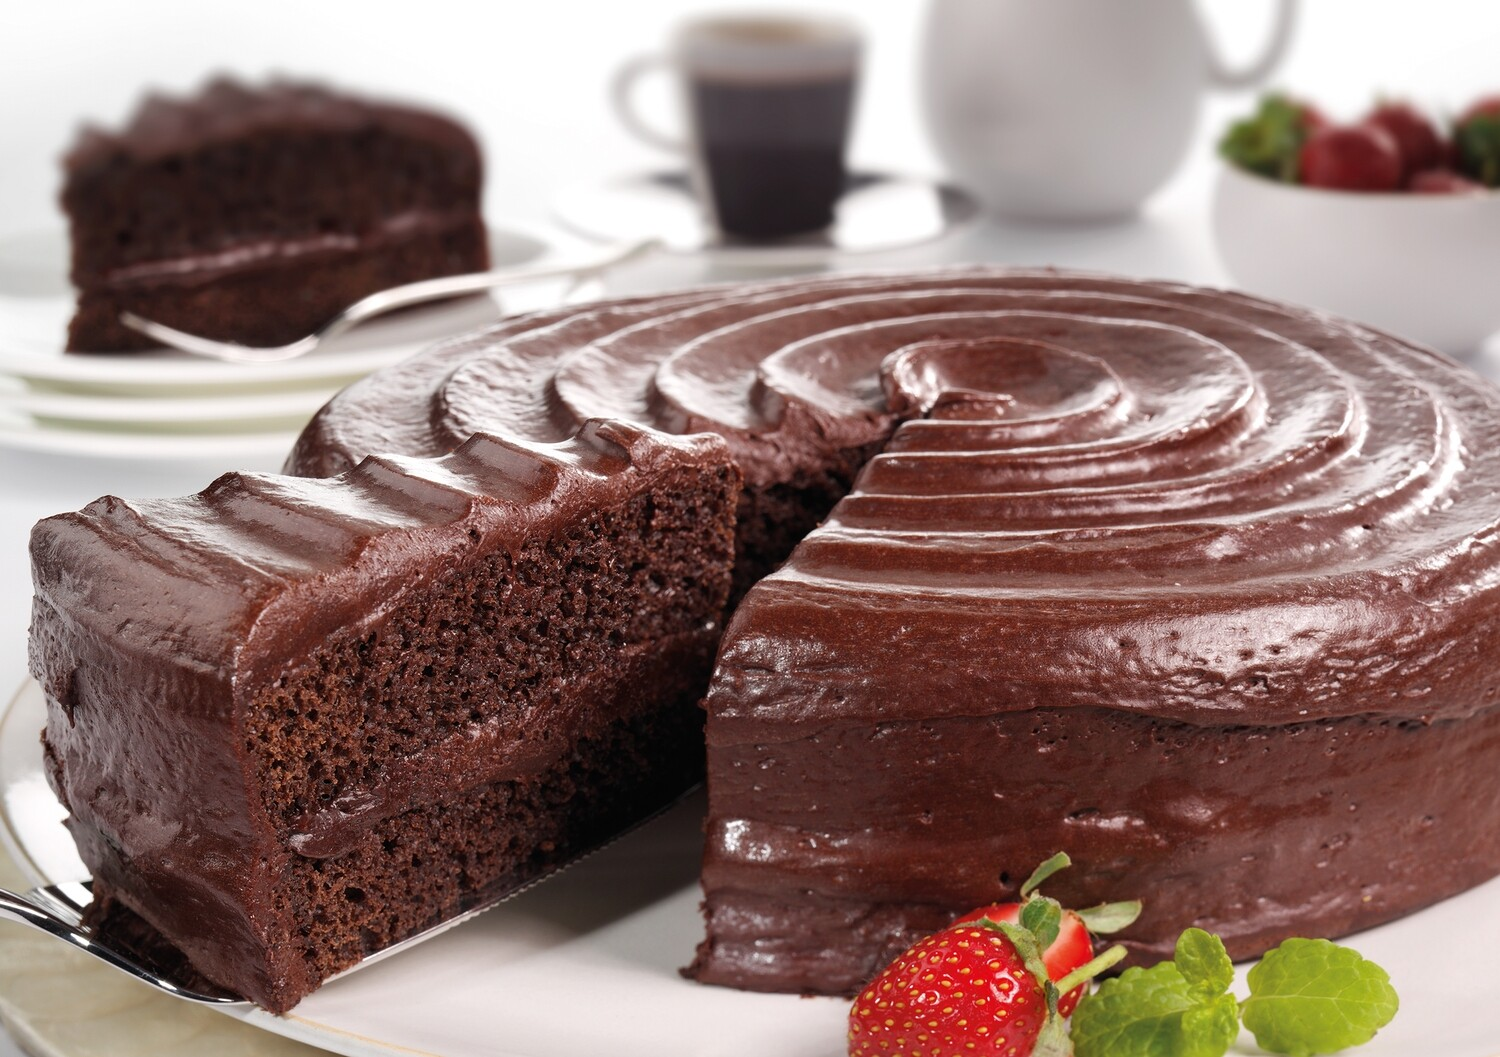 Chocolate Fudge Cake (16 Slices)